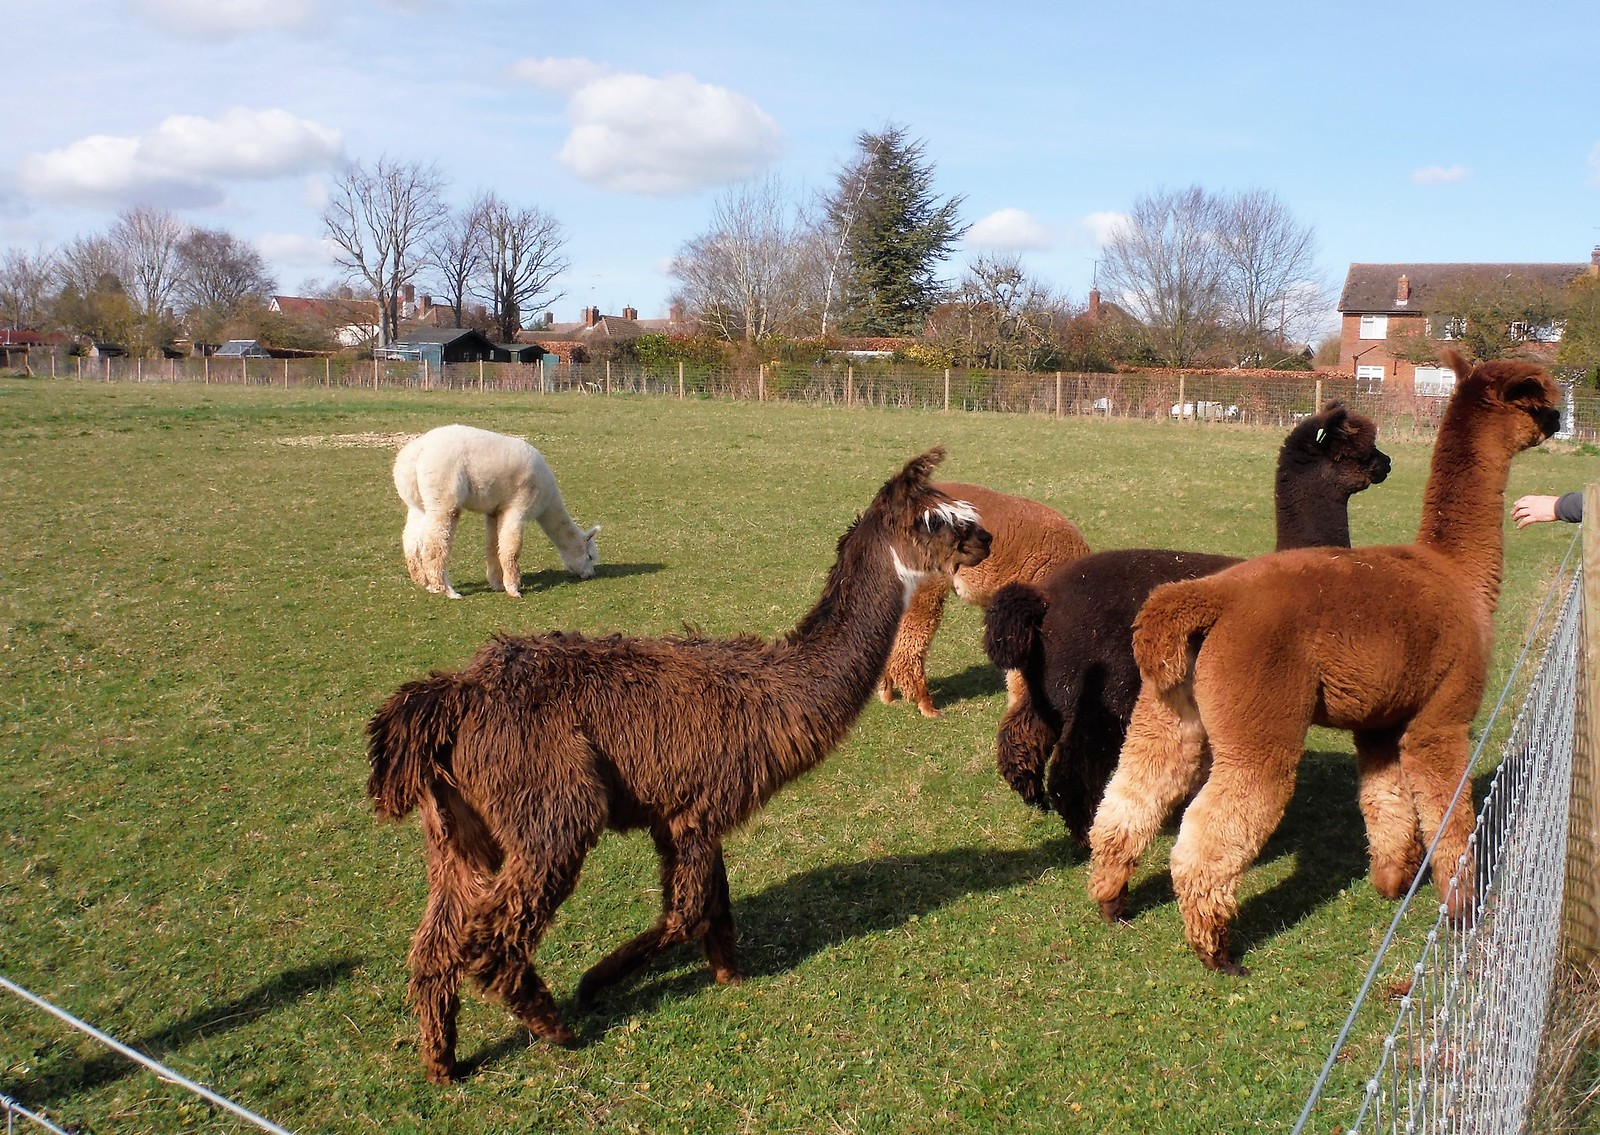 Alpacas SWC Walk 193 Haddenham to Aylesbury (via Gibraltar and Ford)